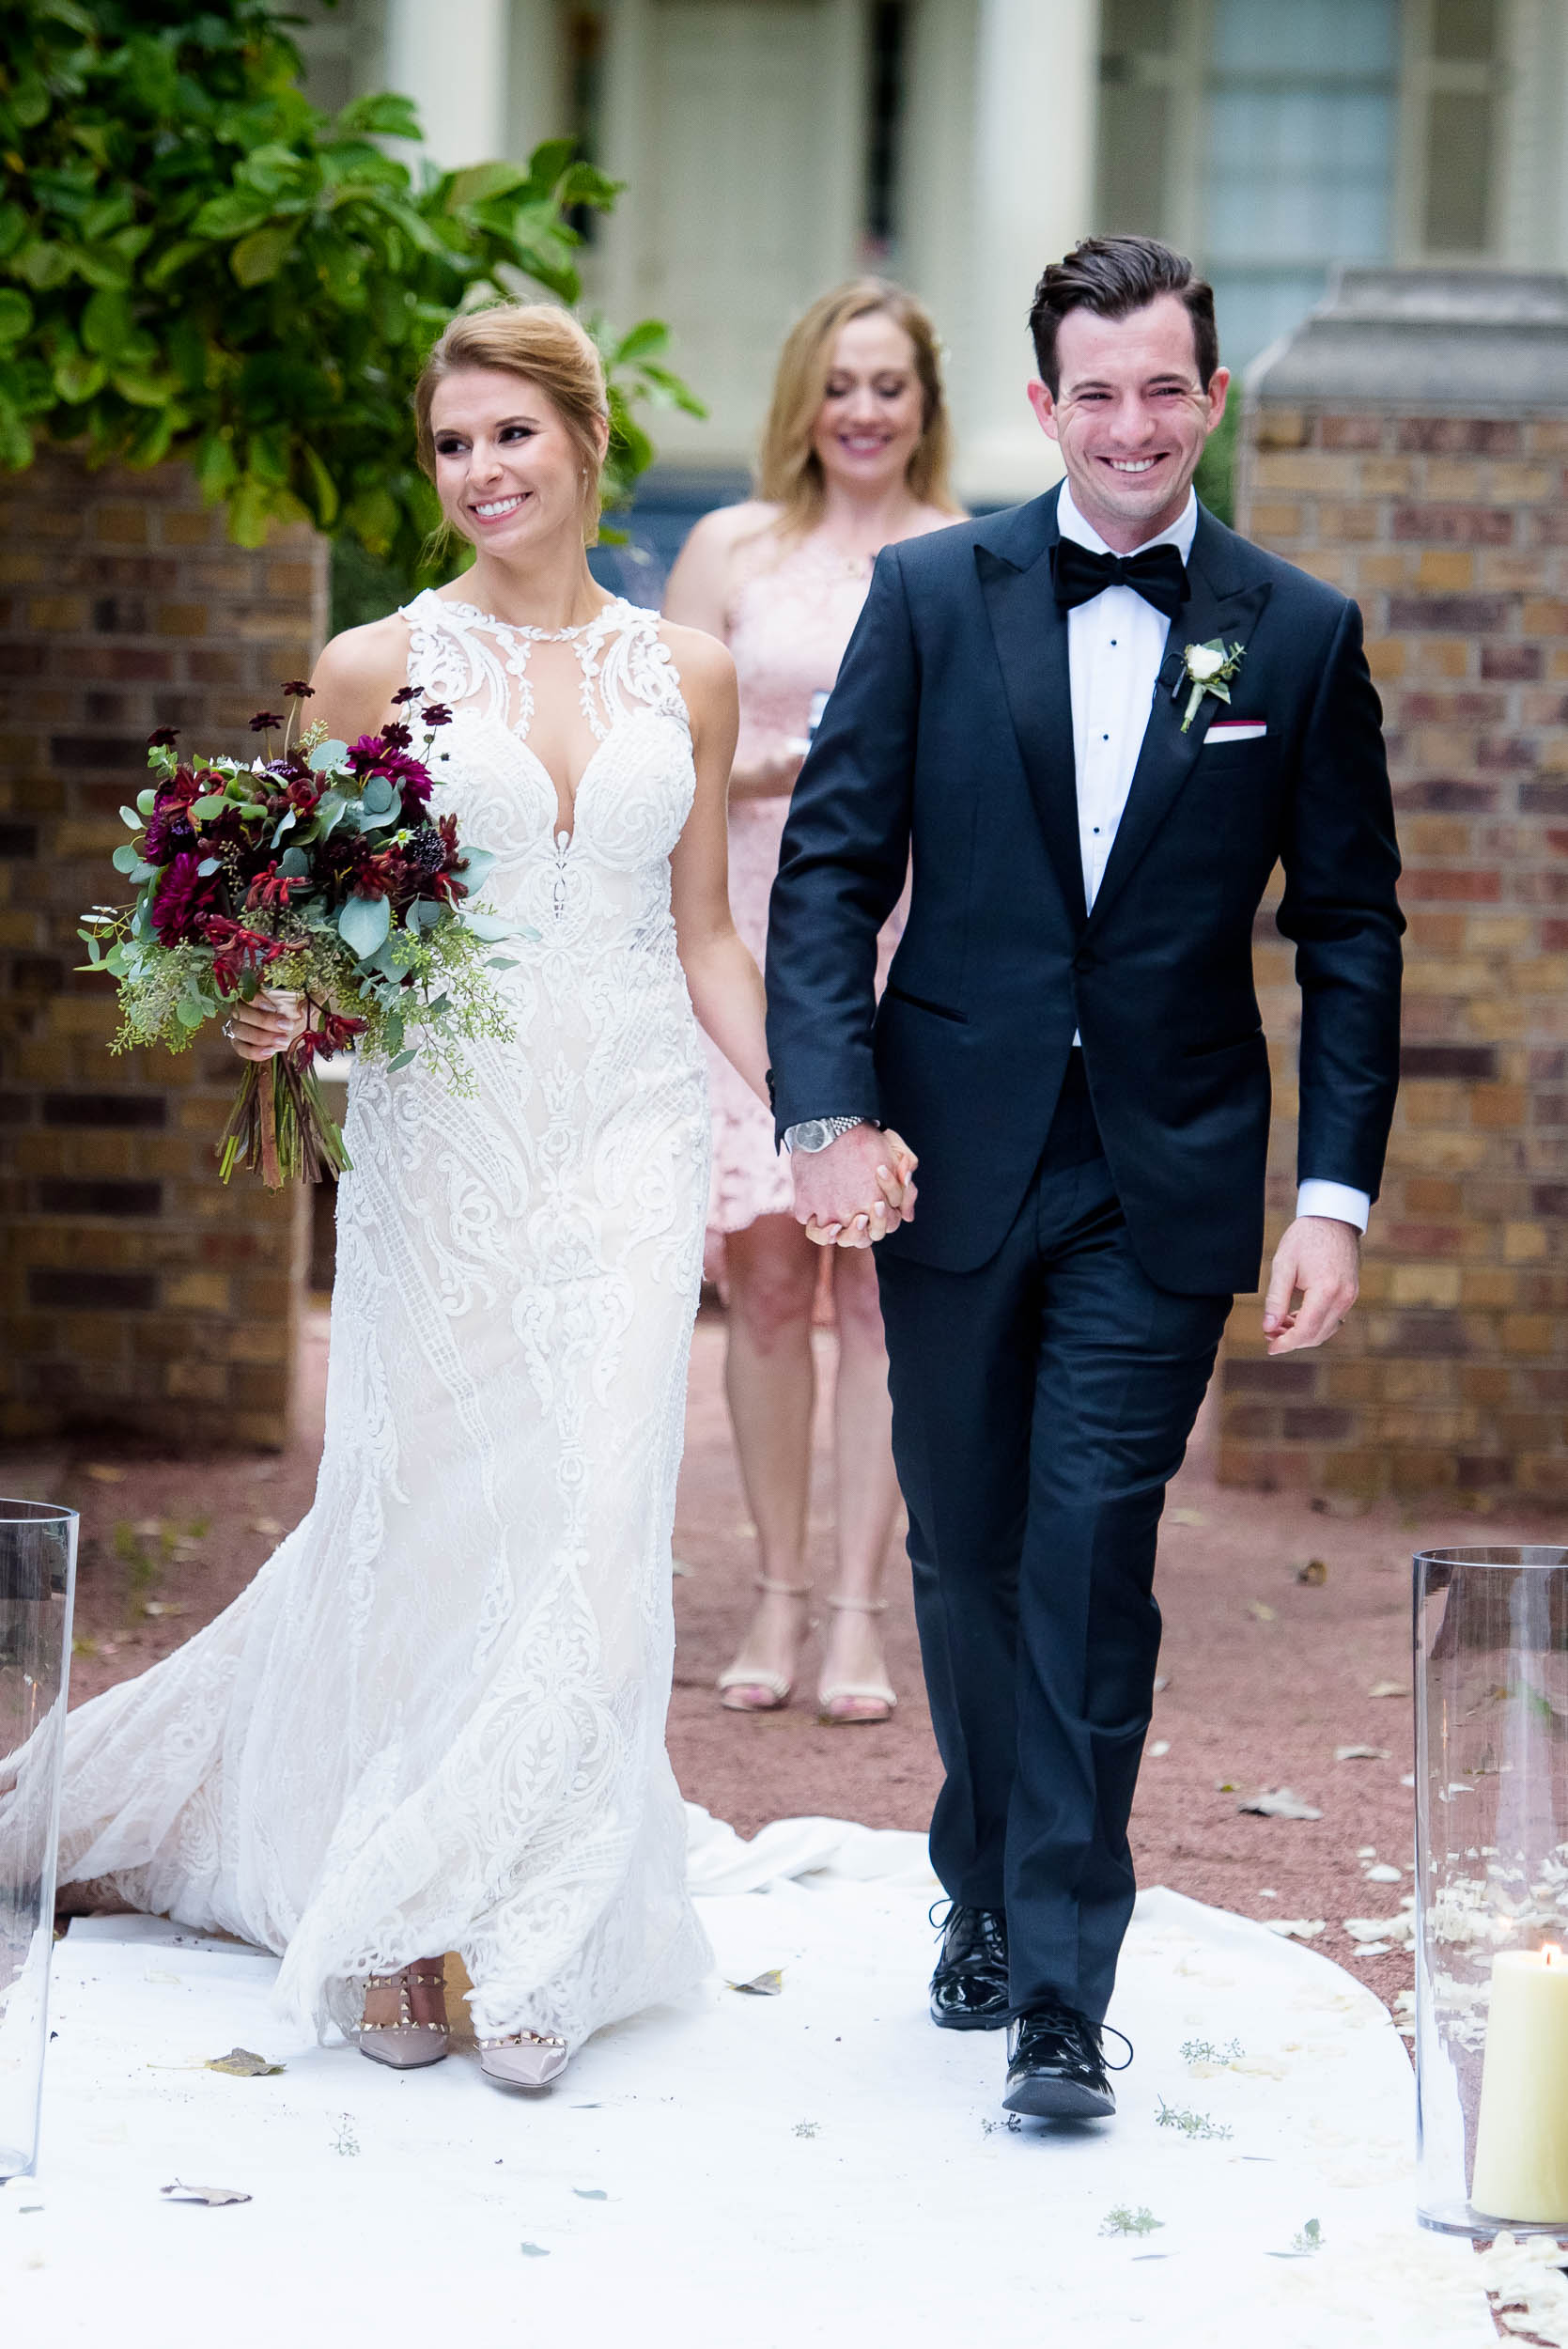 Bride and groom walk down the aisle during a Glessner House Chicago wedding ceremony.